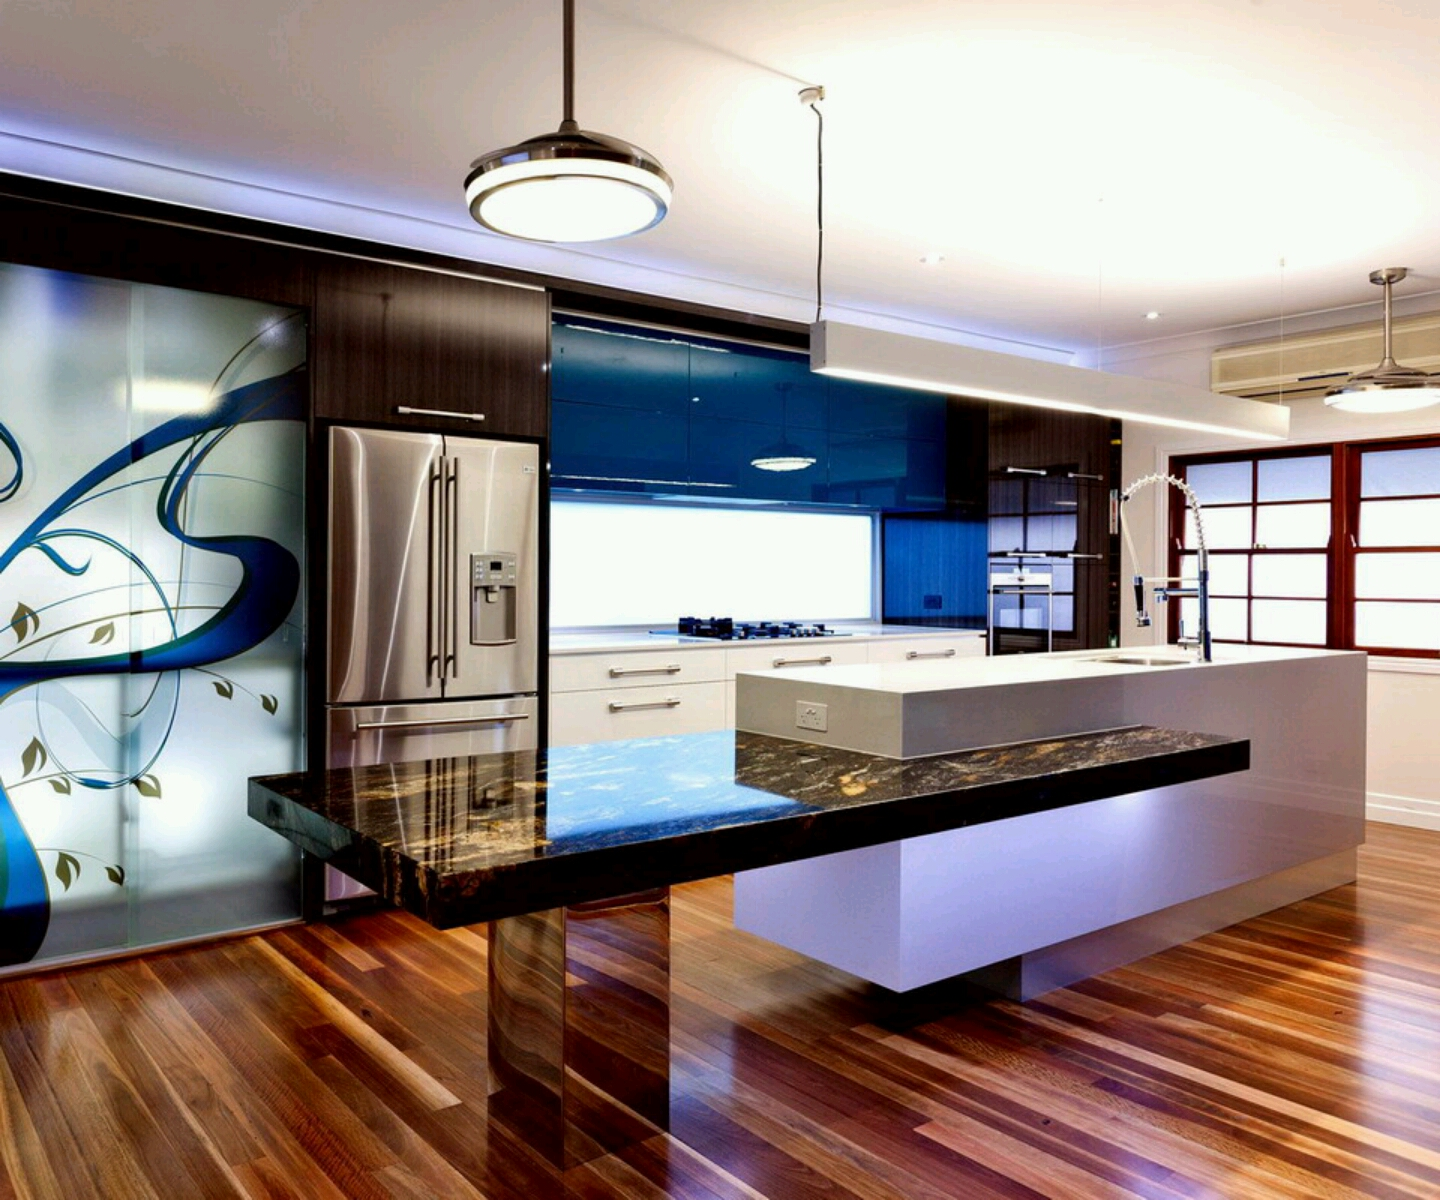 New home designs latest ultra modern kitchen designs ideas Modern kitchen design ideas